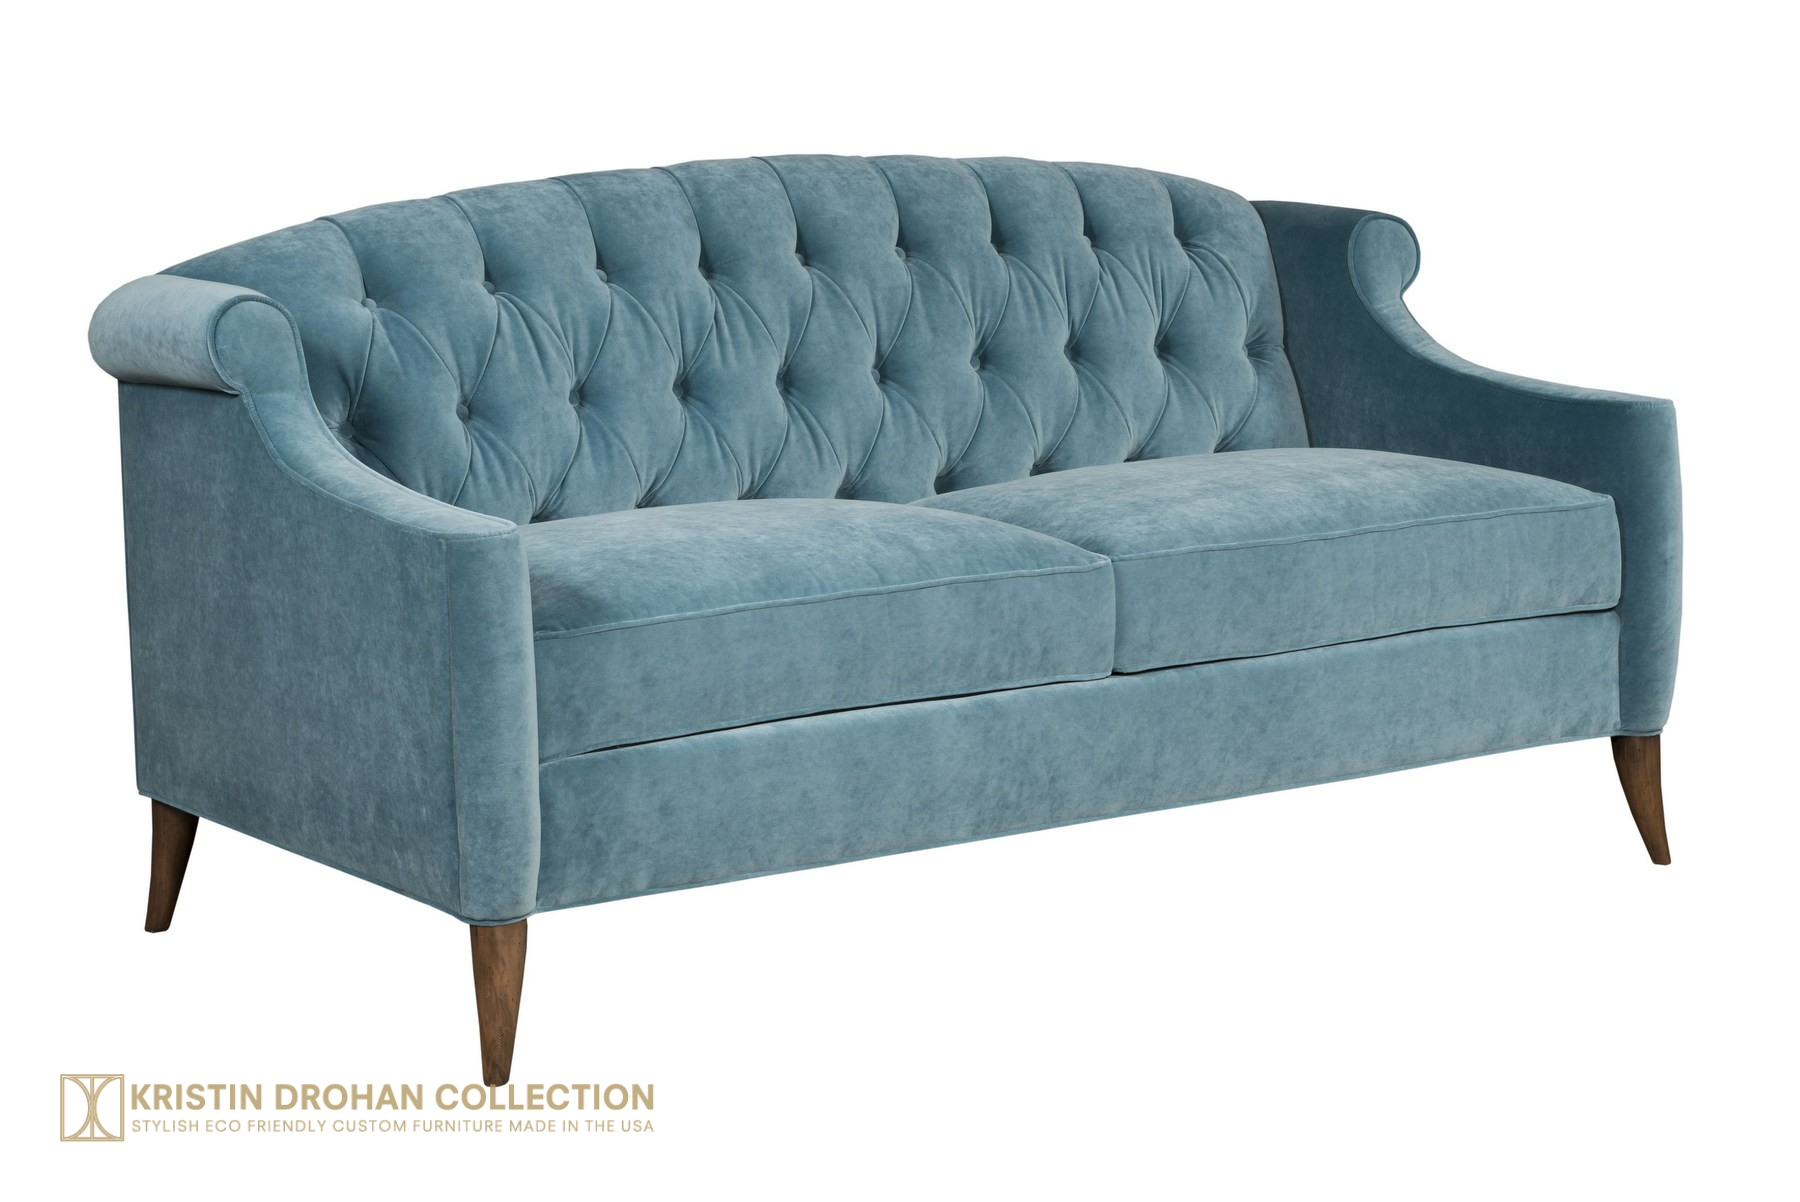 Coco Sofa 72 Cotton Velvet Calypso